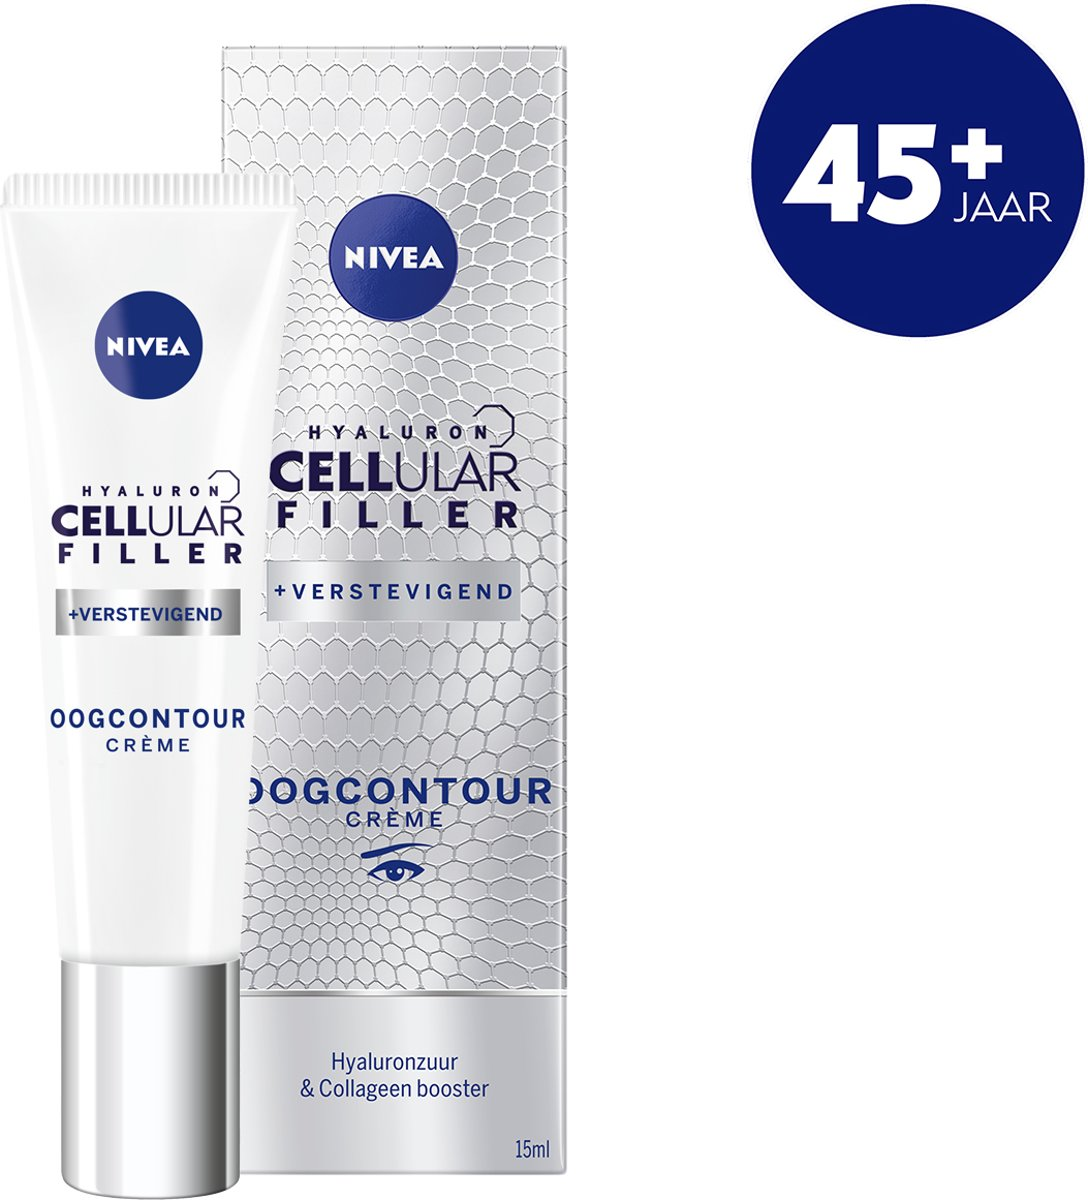 NIVEA CELLular Anti Age 45+ - Oogcontourcrème - Anti-Rimpel - 15 ml